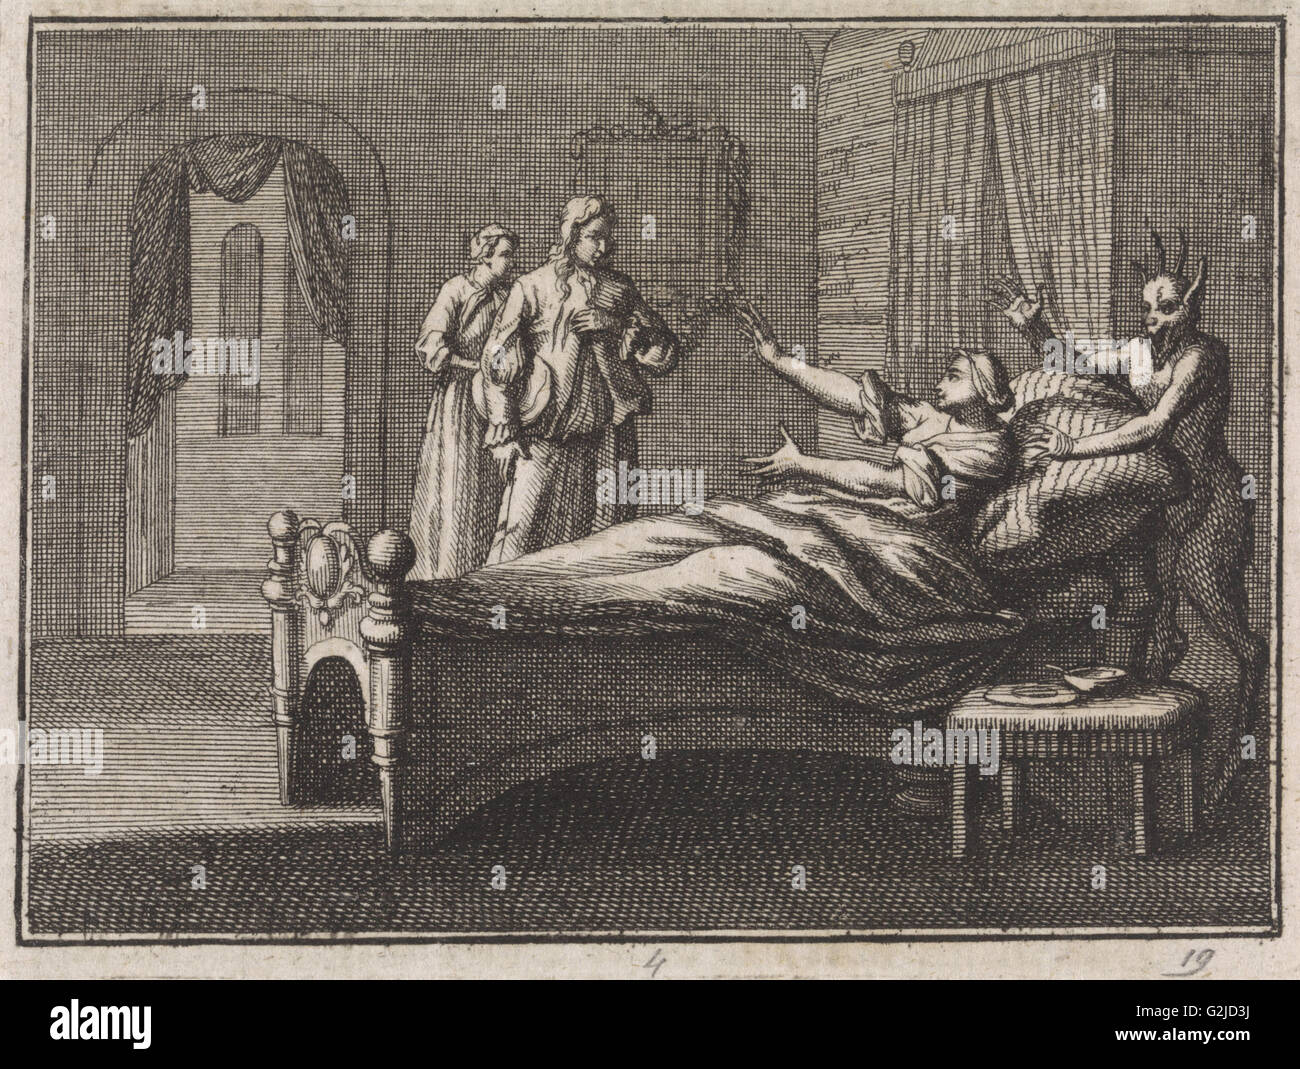 Sick woman receives her lover, Caspar Luyken, Christoph Weigel, 1704 - Stock Image